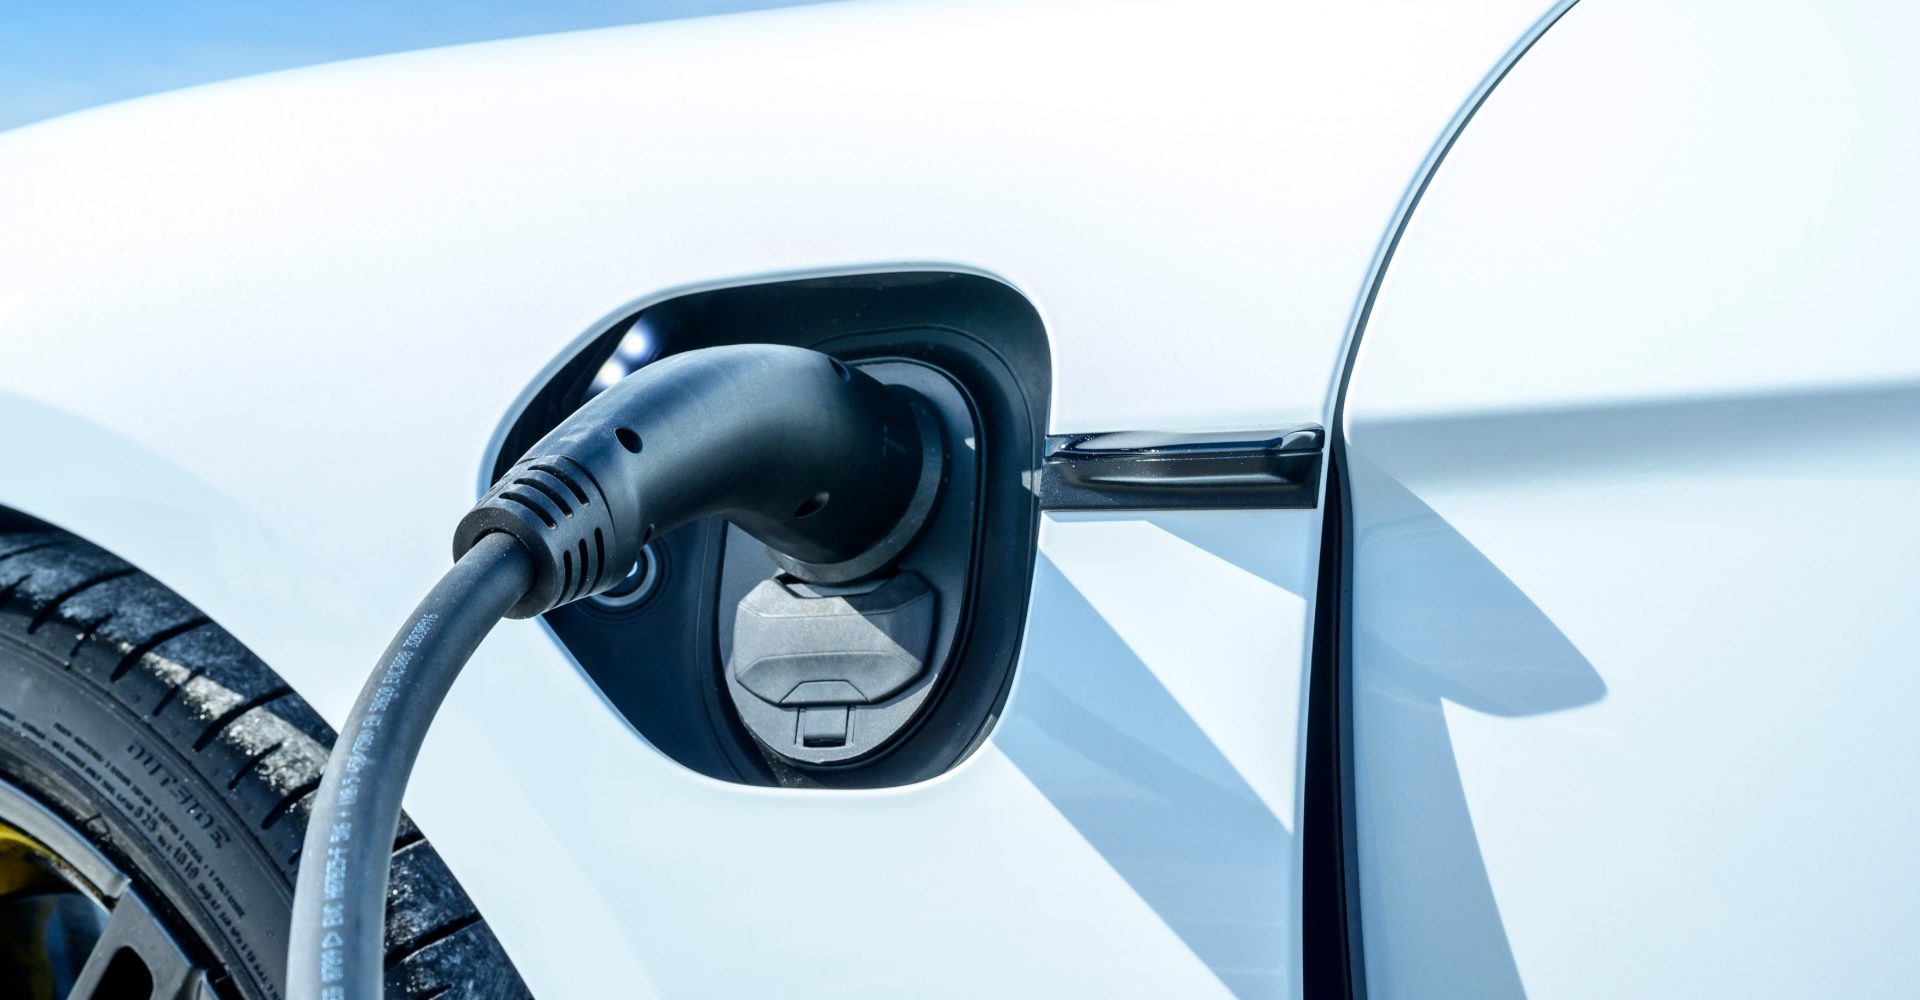 Making the switch to an electric vehicle: what you need to know